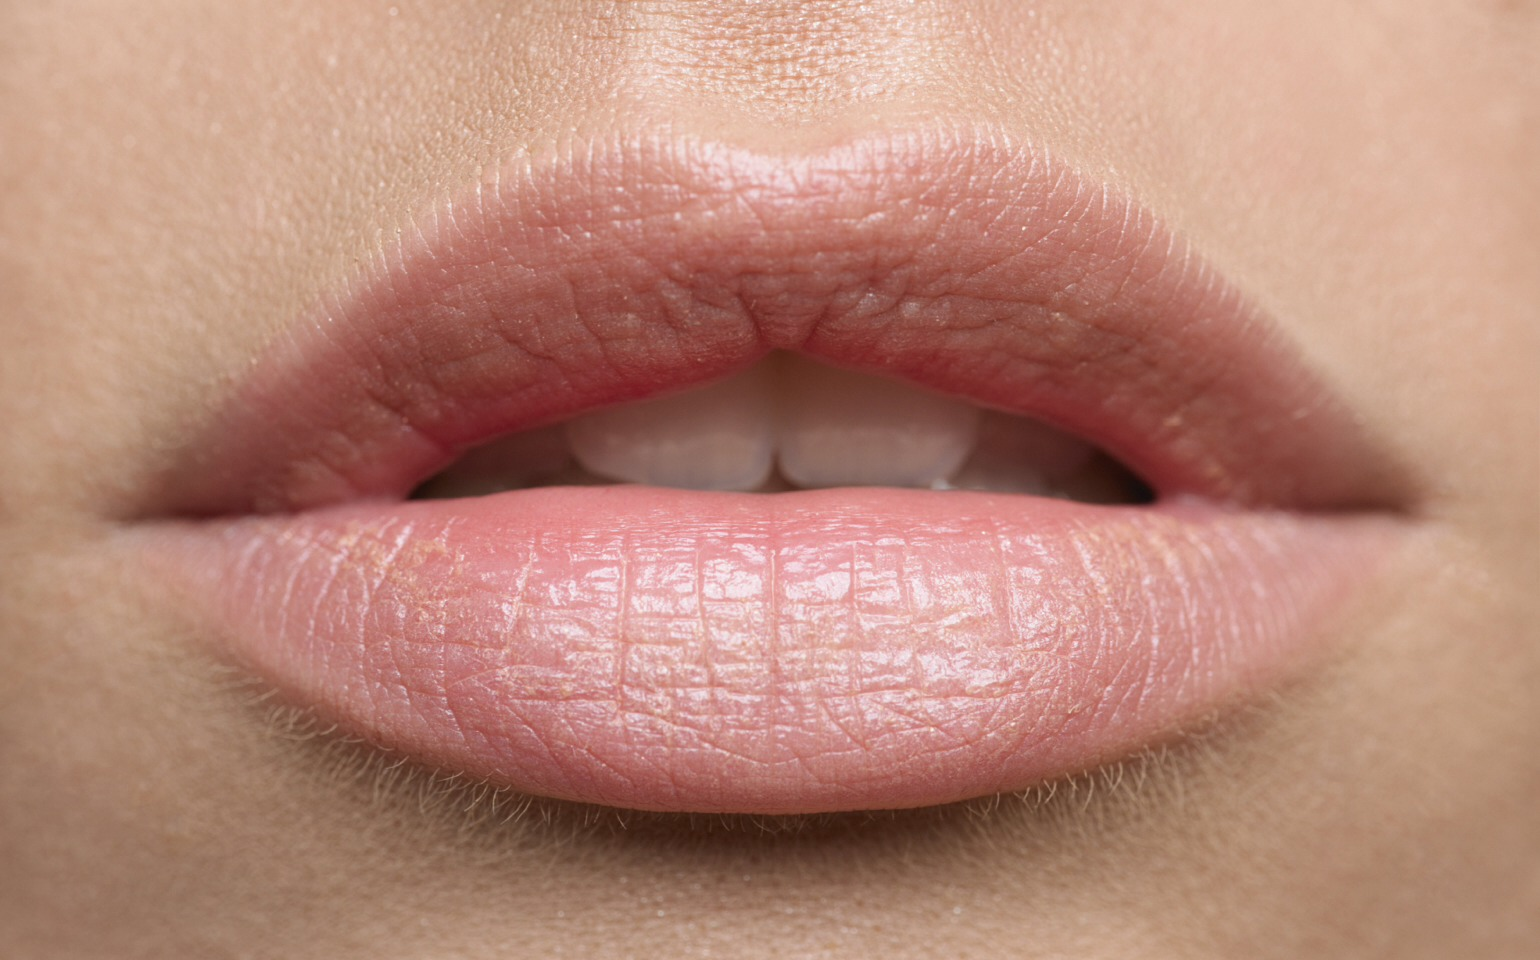 Vaseline can make lips supper soft and smooth. It is a good chap stick.